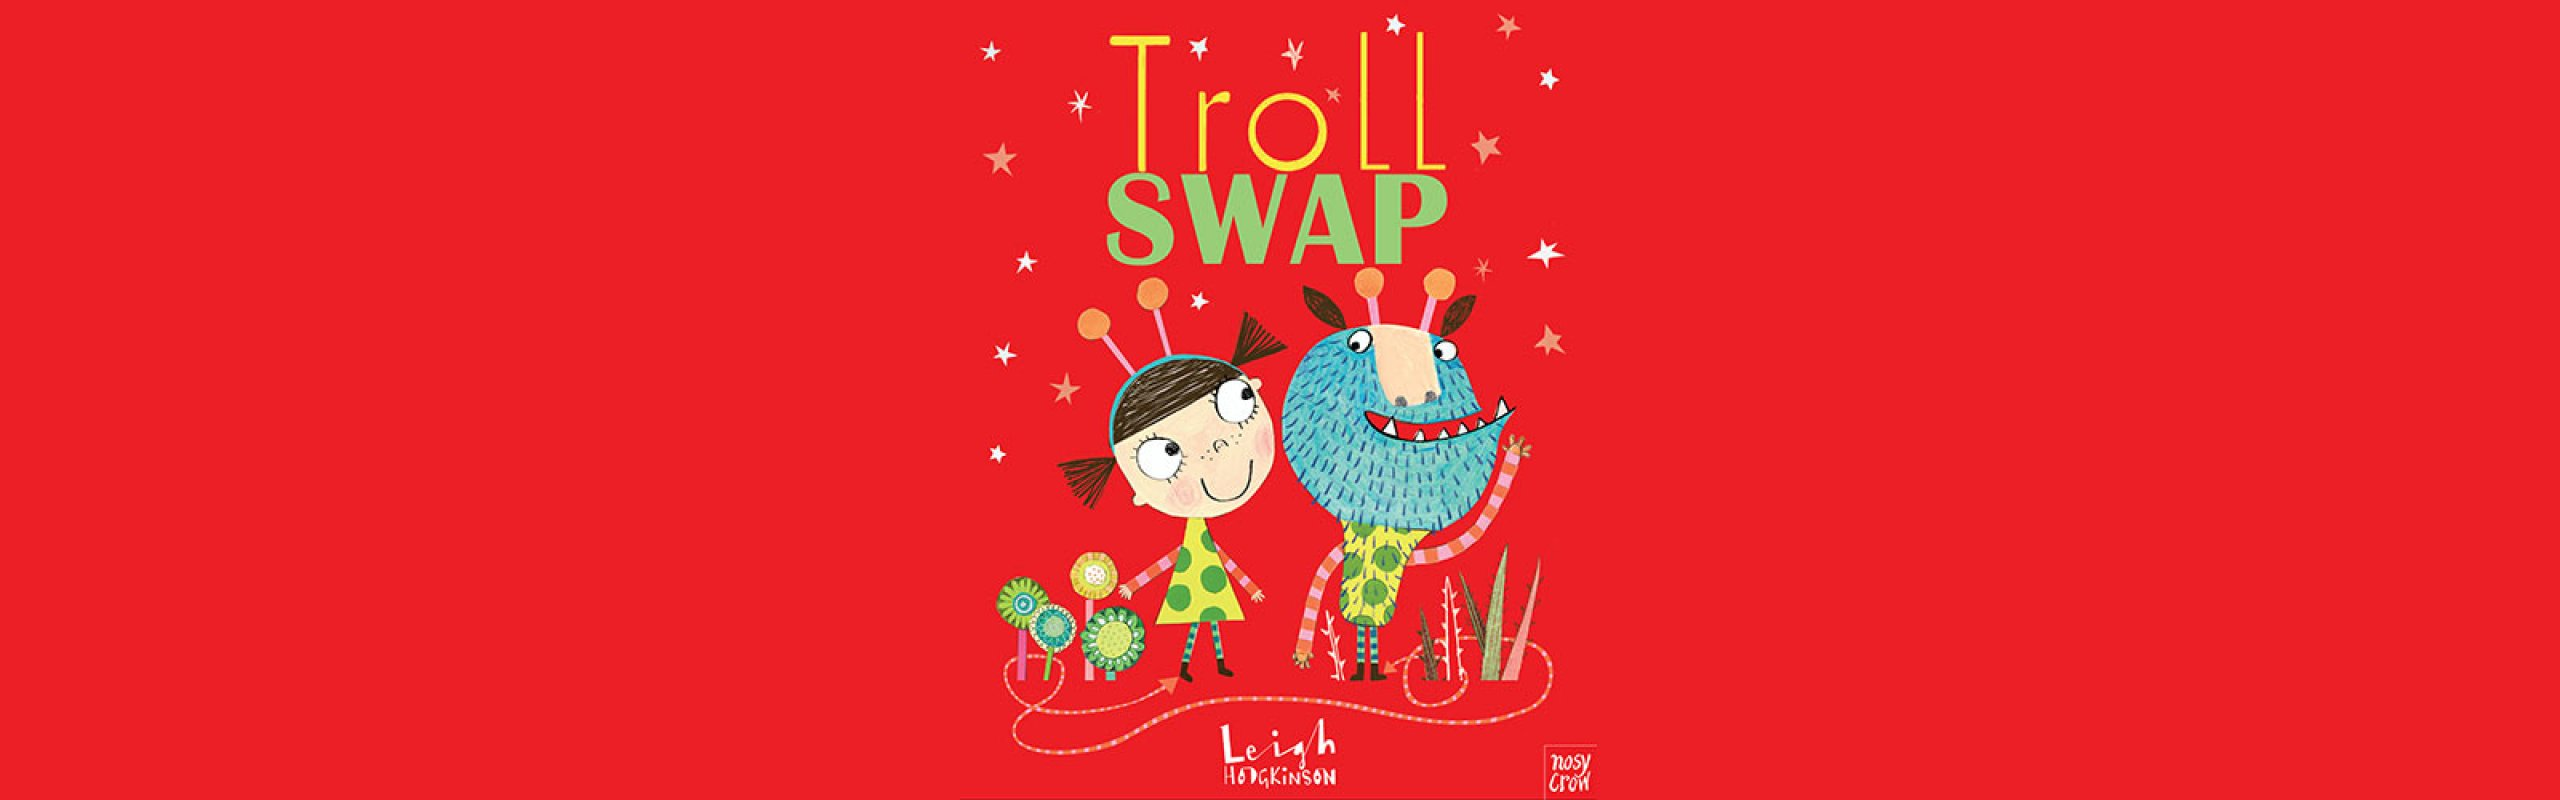 It's Storytime! TROLL SWAP di Leigh Hodgkinson